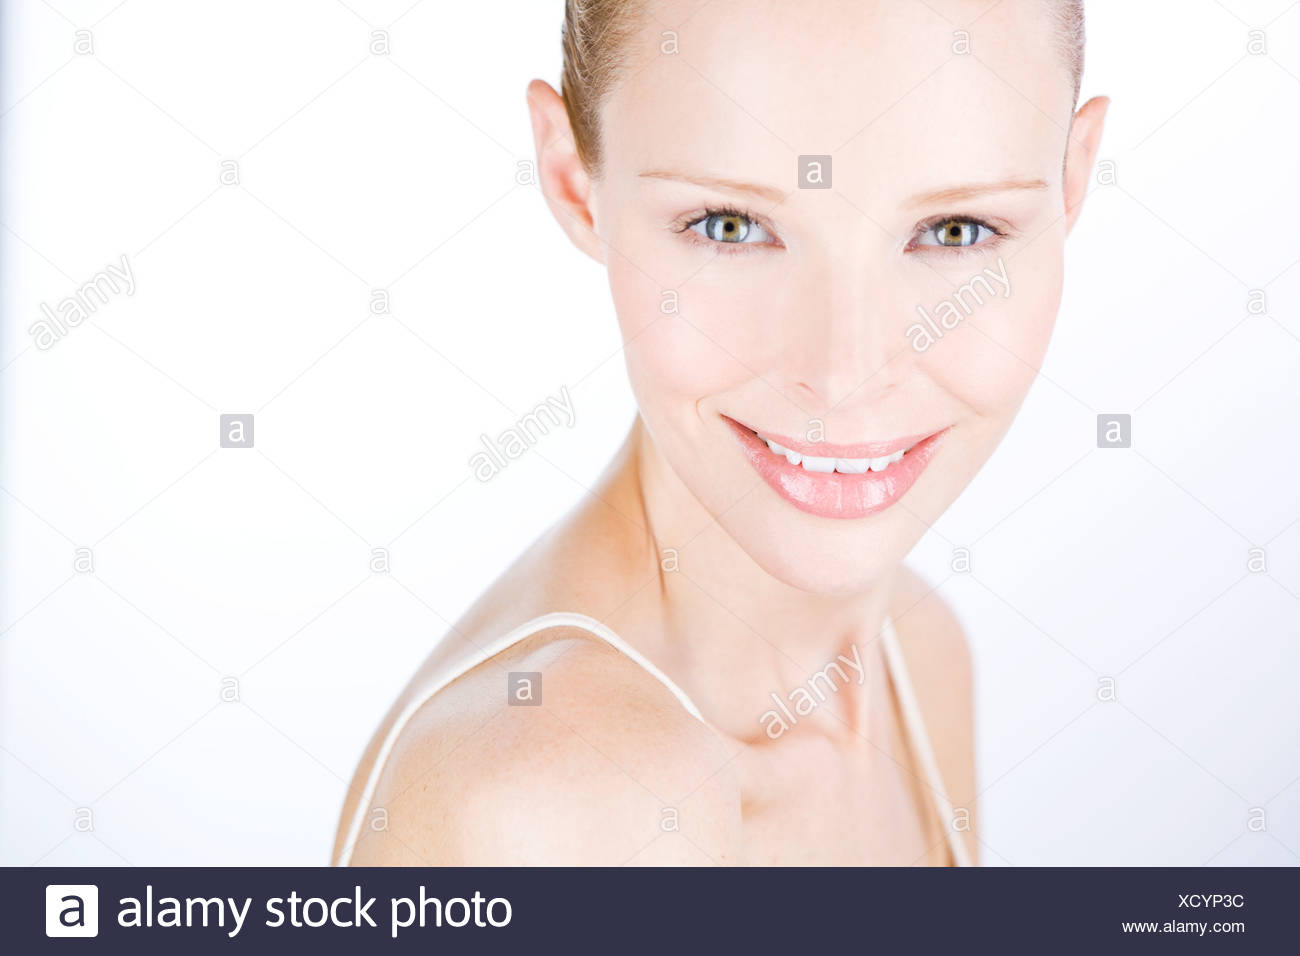 A portrait of a young woman looking over her shoulder, smiling - Stock Image